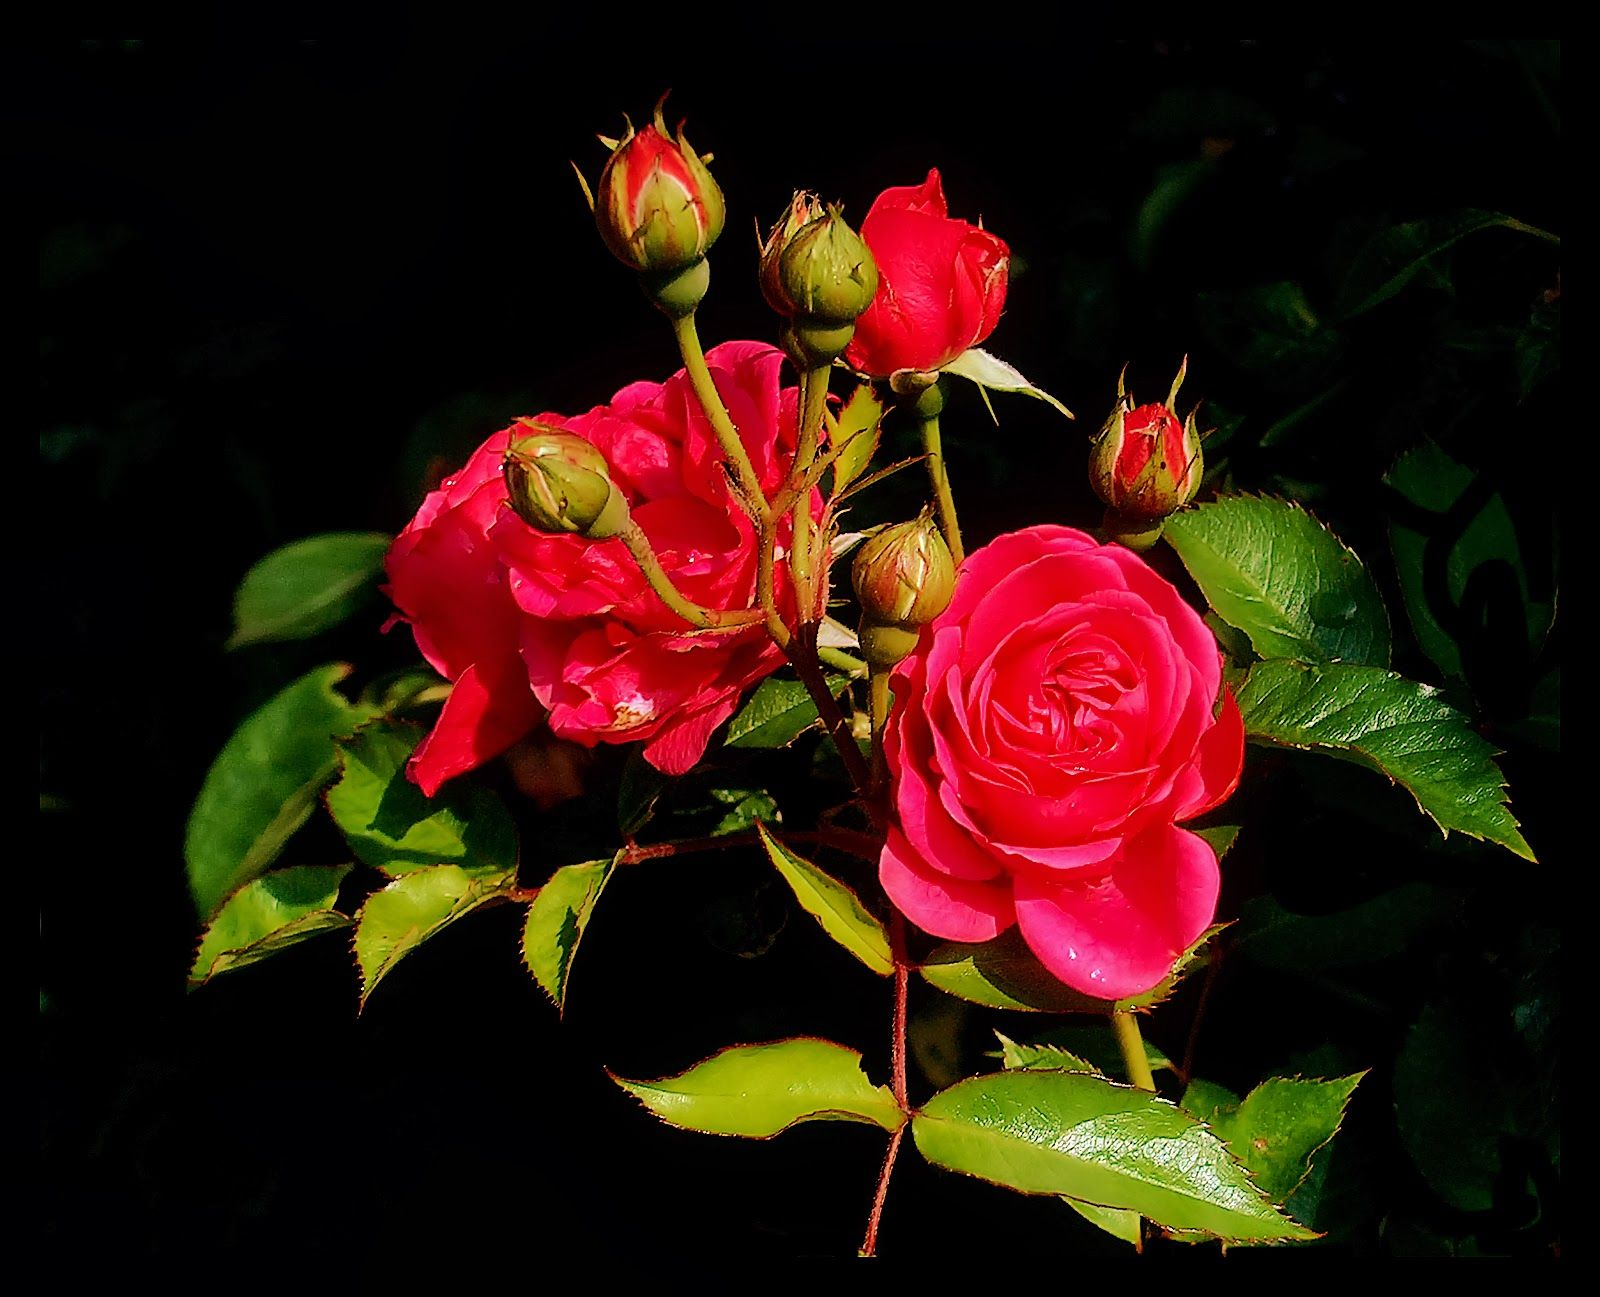 Mind Blowing Hd Red Rose Wallpaper Image Wallpapers Hd Wallpapers